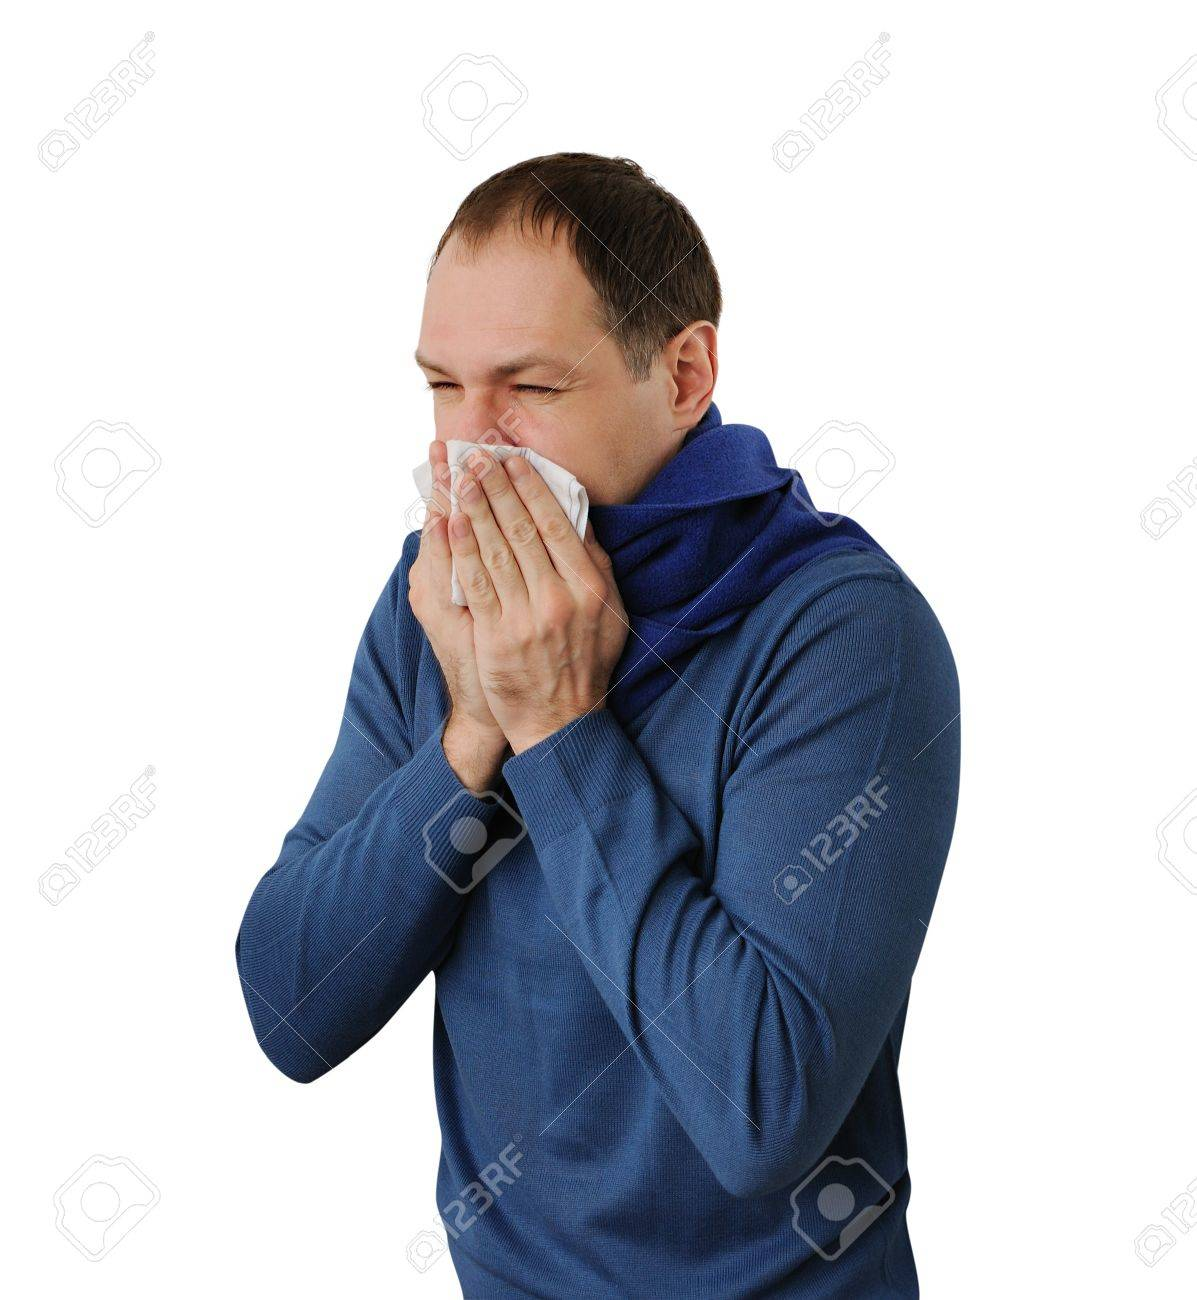 Man blowing his nose isolated on white background - 17456952